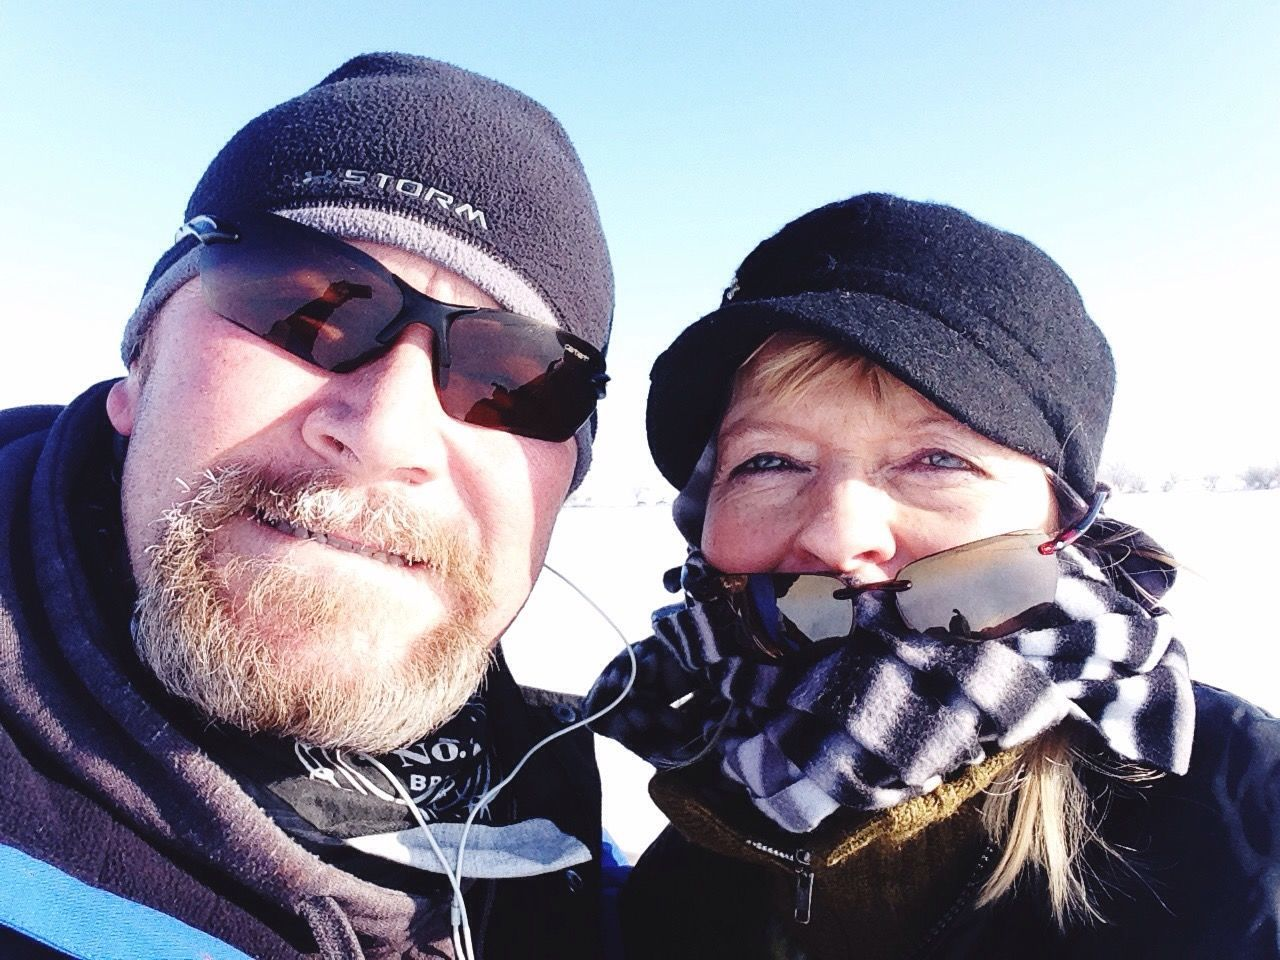 Adventure Buddies another day out ice fishing .... Brrrrrrrr